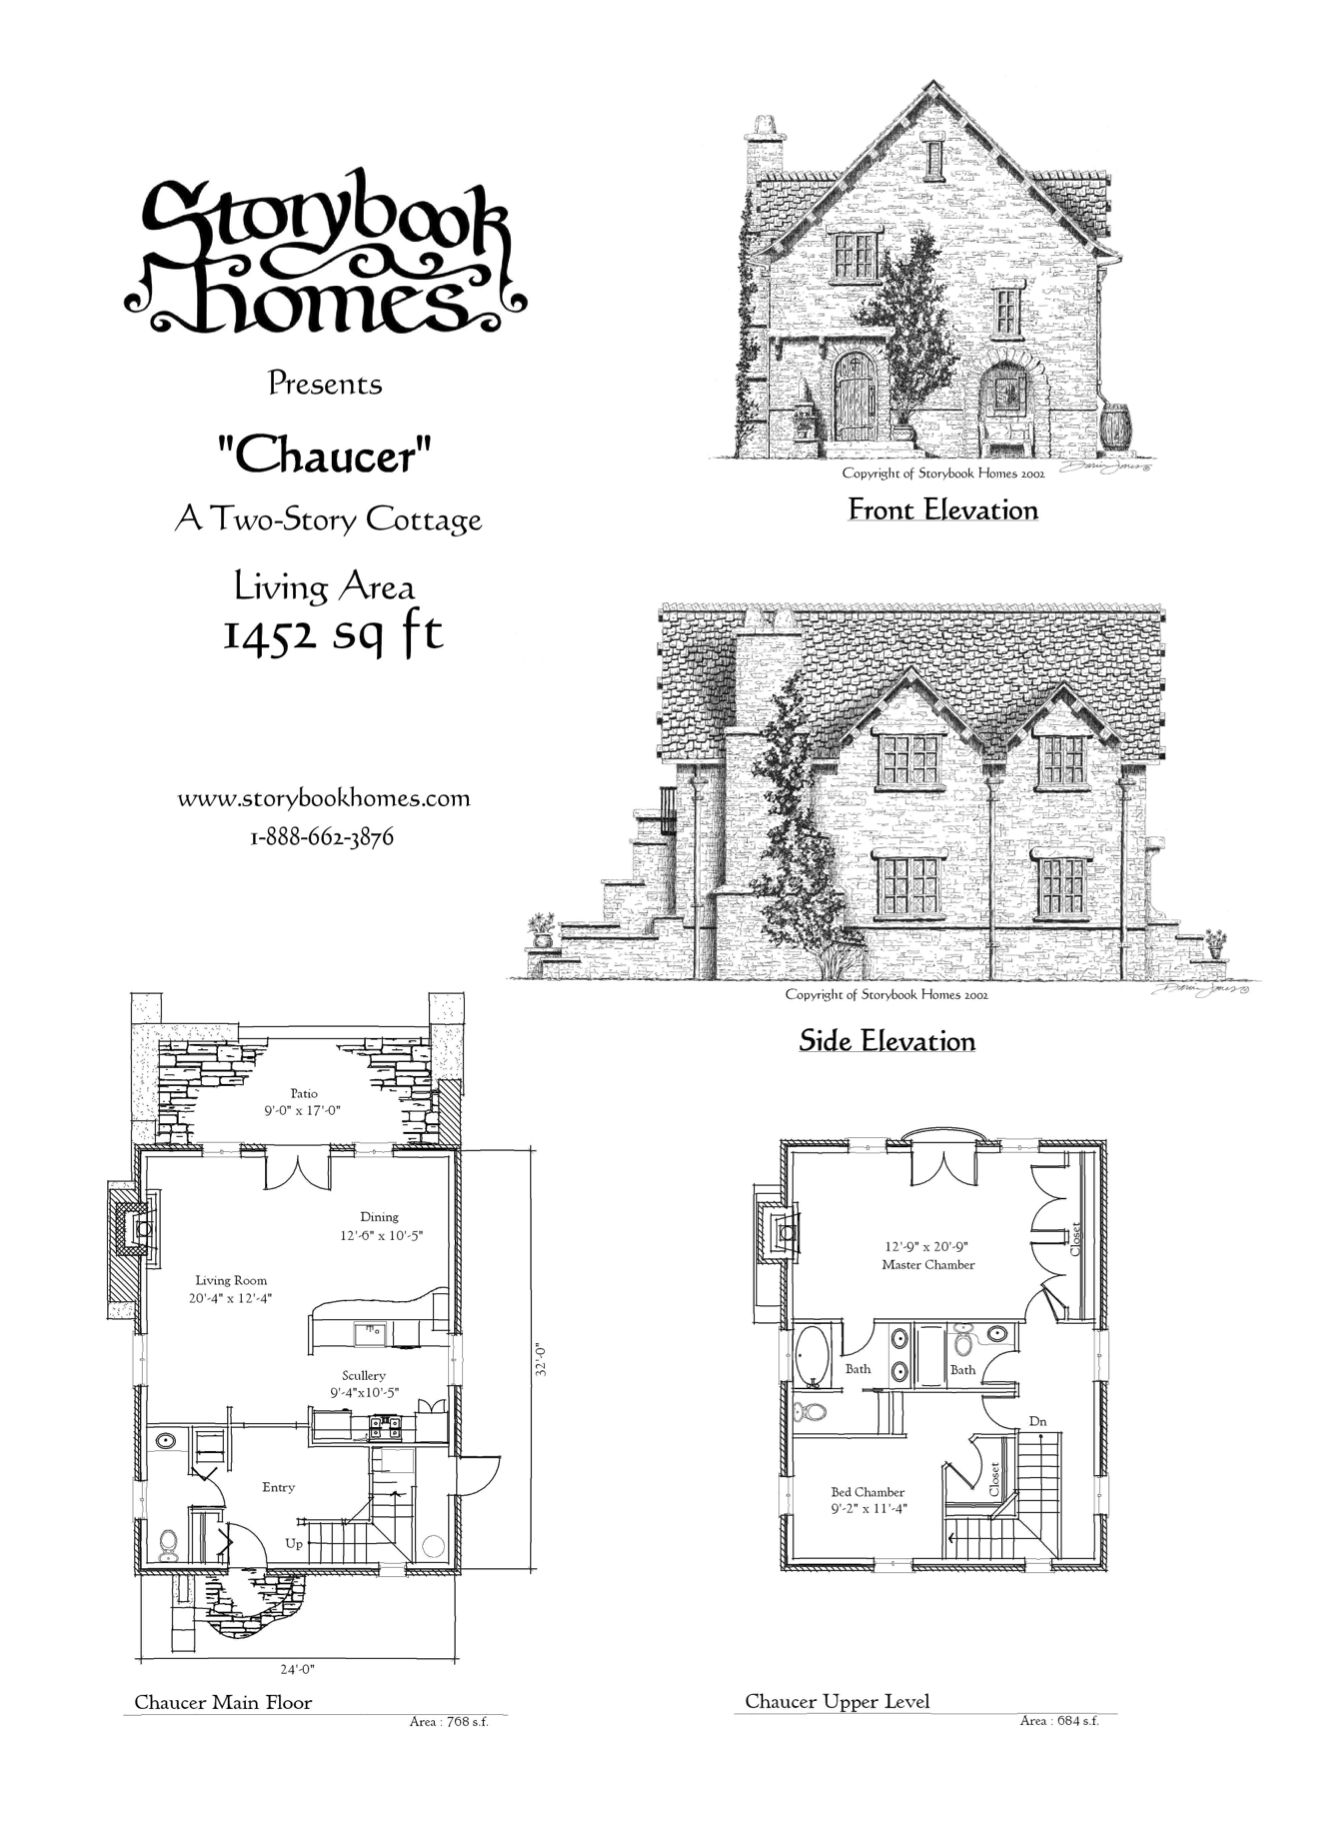 Storybook Homes Floor Plans | Chaucer Houseplan Via Storybook Homes House Plans In 2018